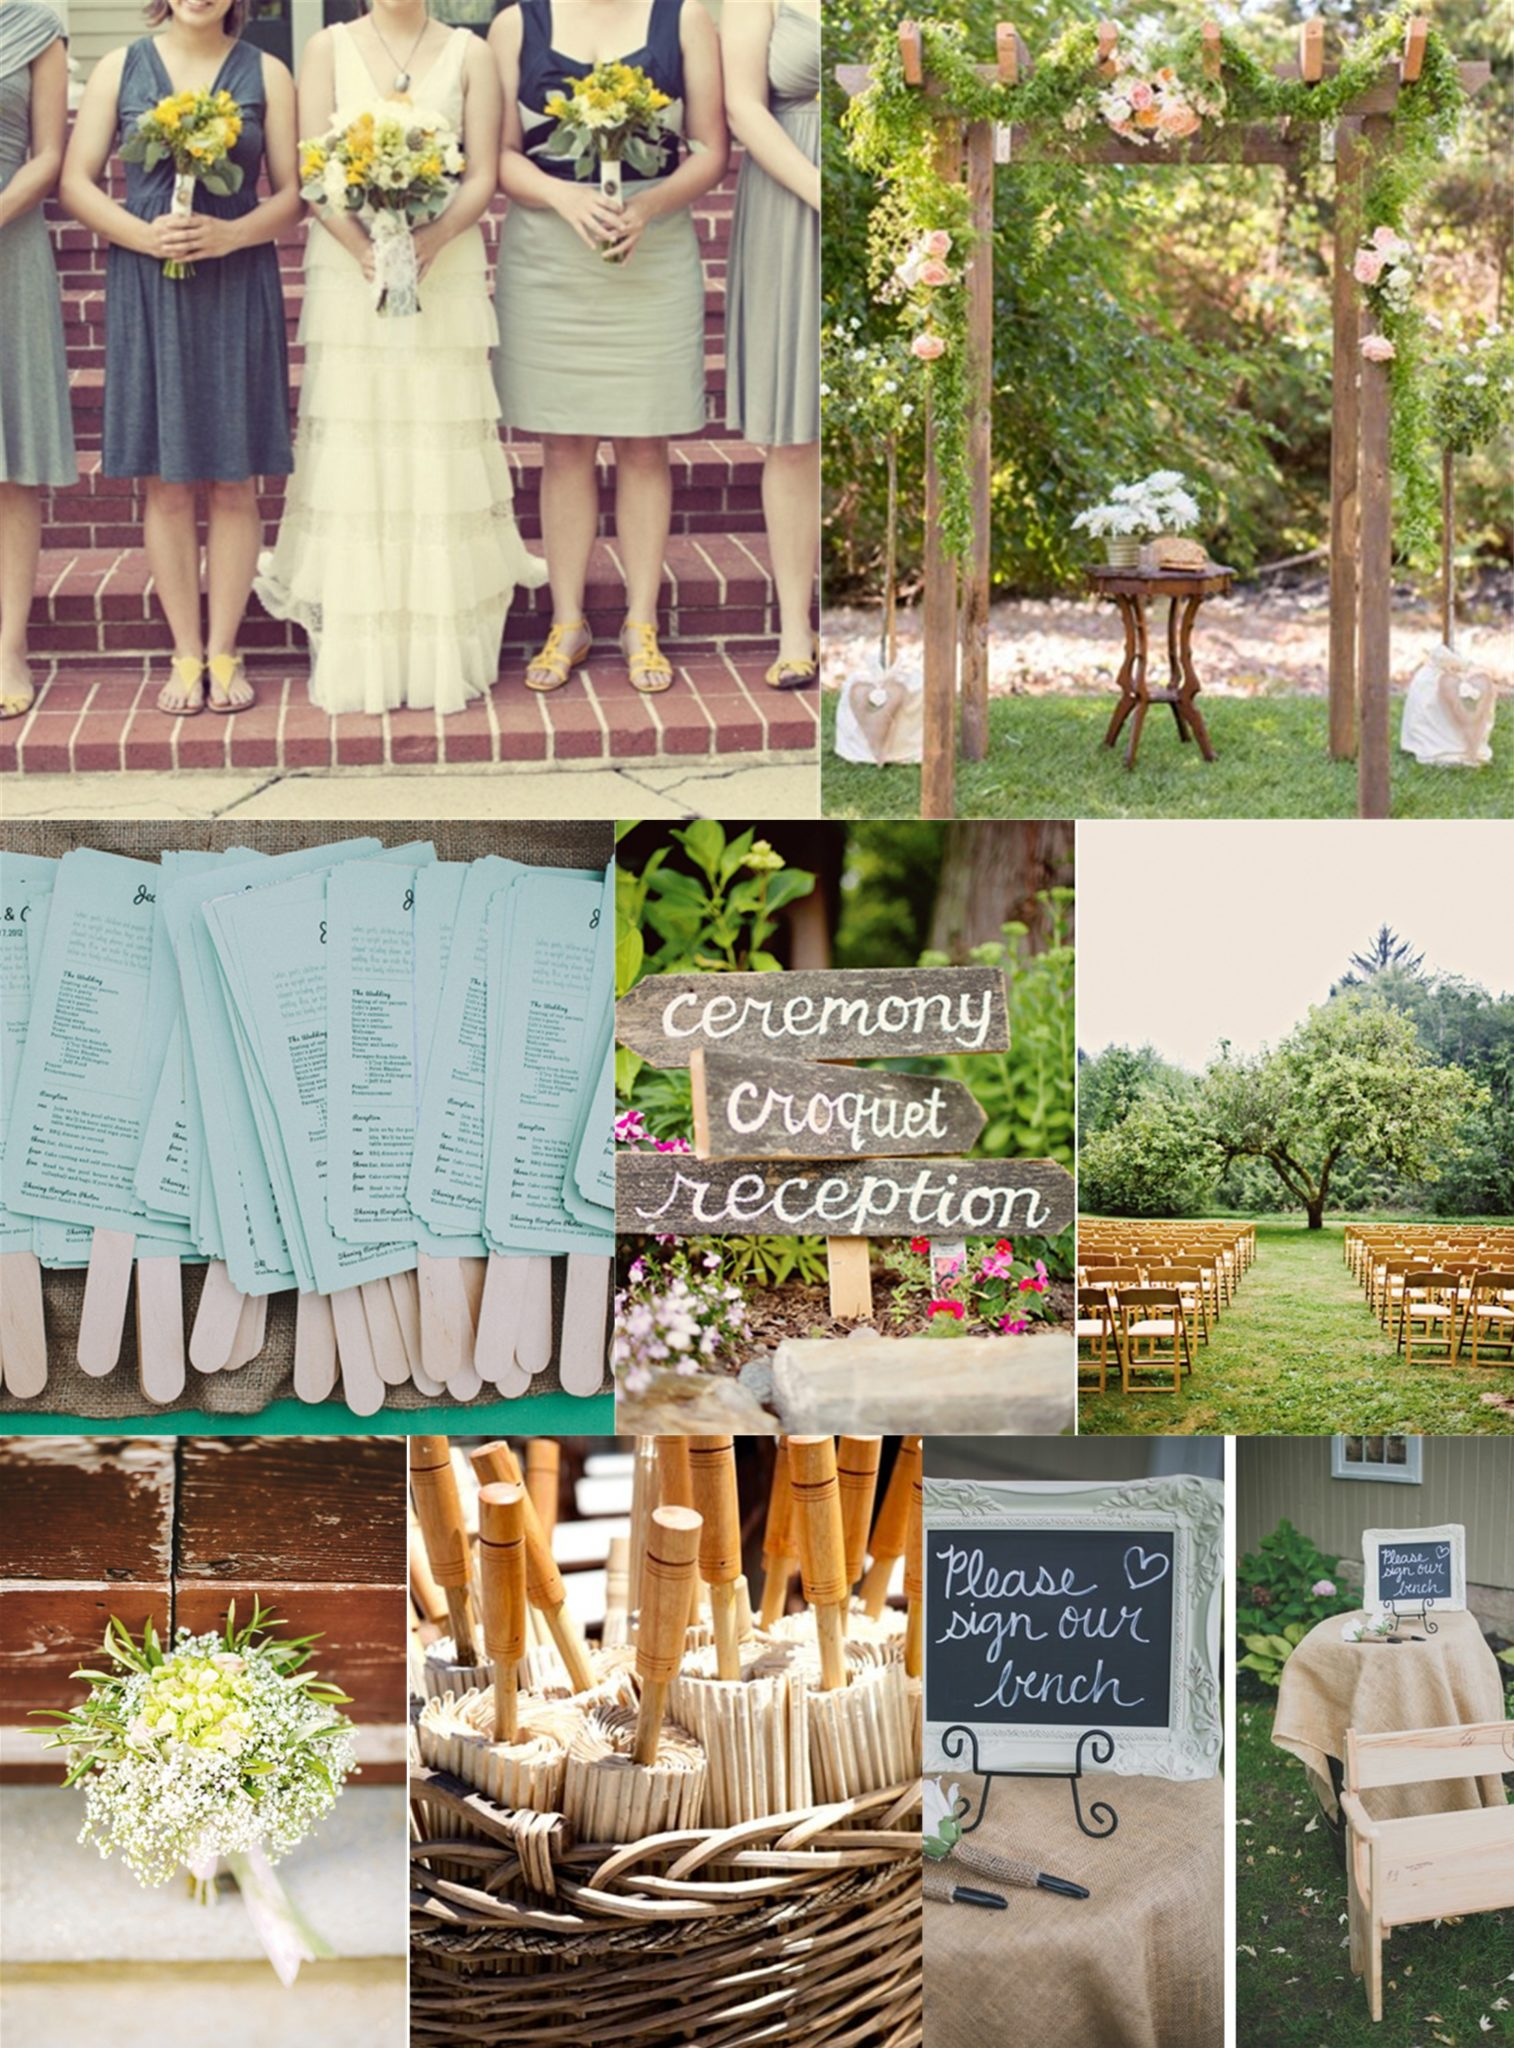 Essential Guide To A Backyard Wedding On A Budget pertaining to 15 Smart Ideas How to Build Backyard Wedding Ideas On A Budget